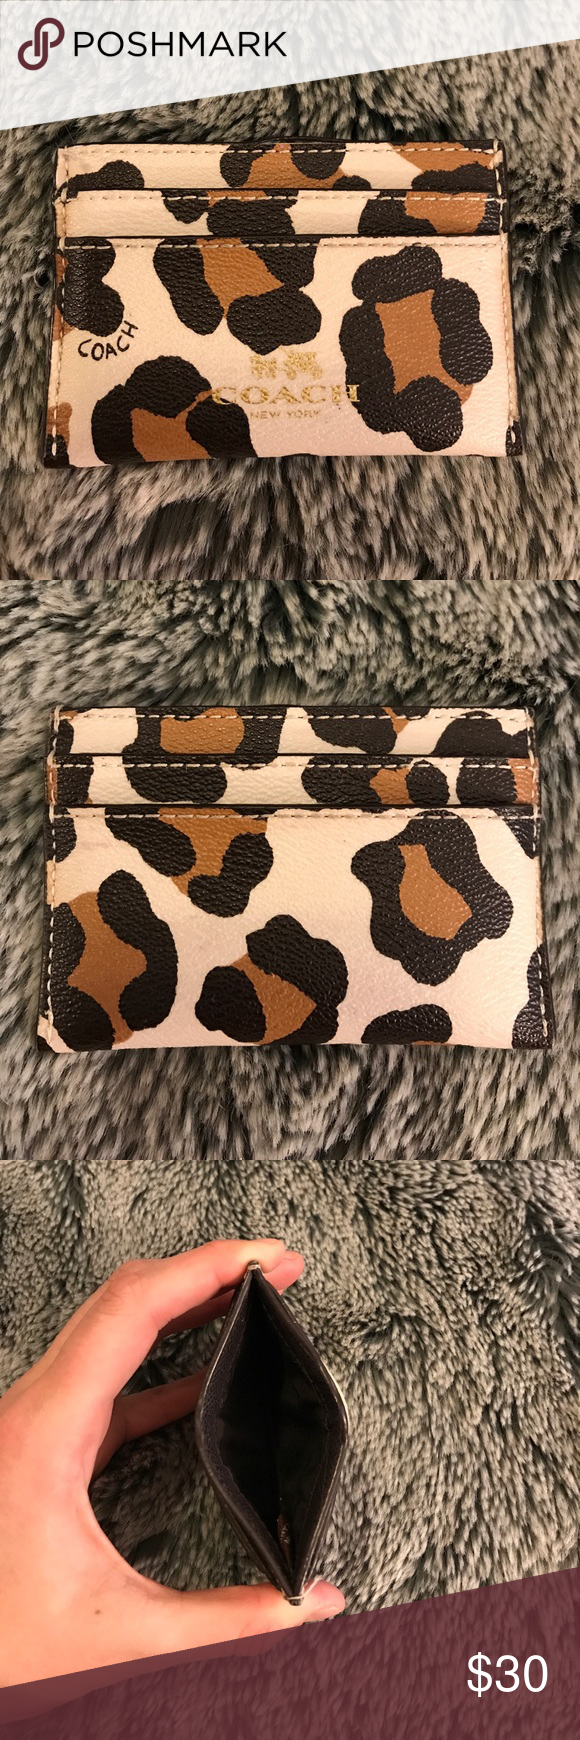 Coach Mini Wallett This wallet has 4 card slots and a larger slot in the middle! It's super small and perfect for a minimalist who loves a statement piece! It's in great condition and ready for a new home! Make an offer! Coach Bags Wallets